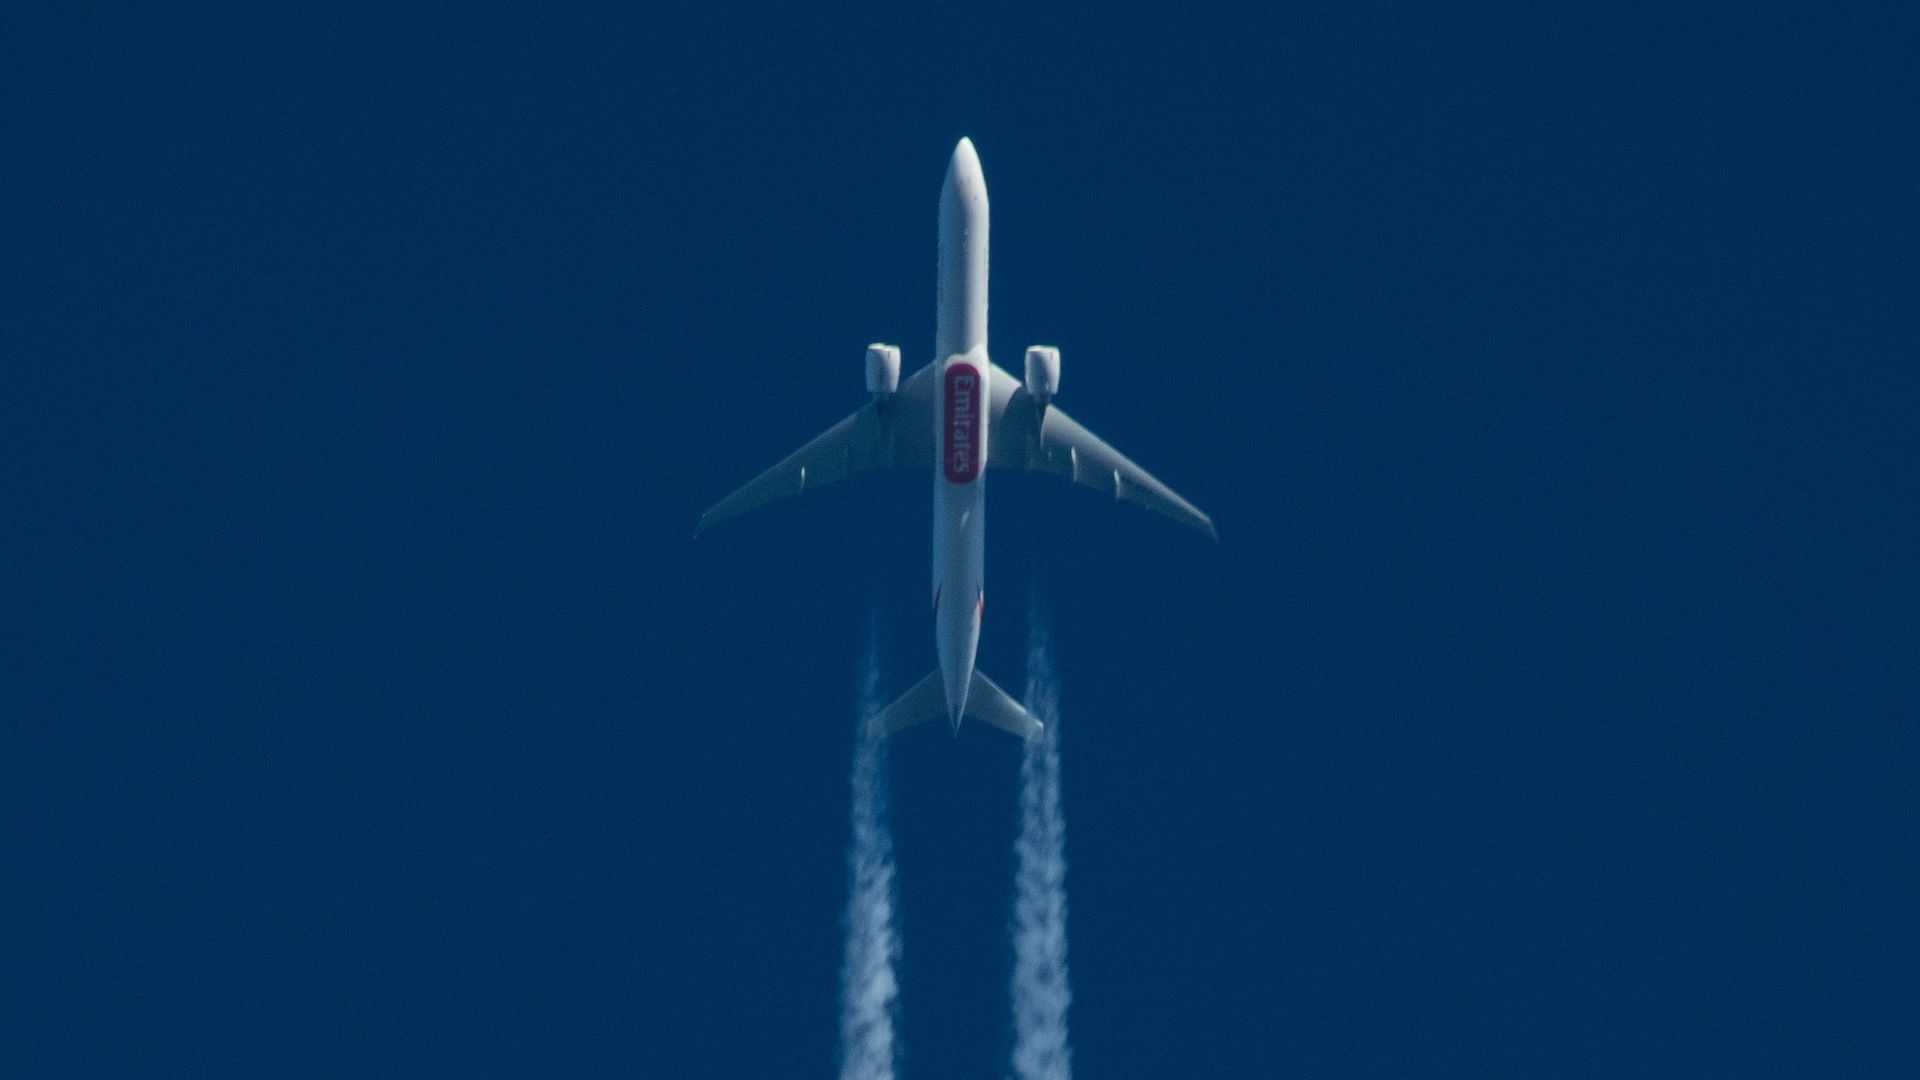 A Boeing 777 of Emirates Airlines pictured flying at high altitude.